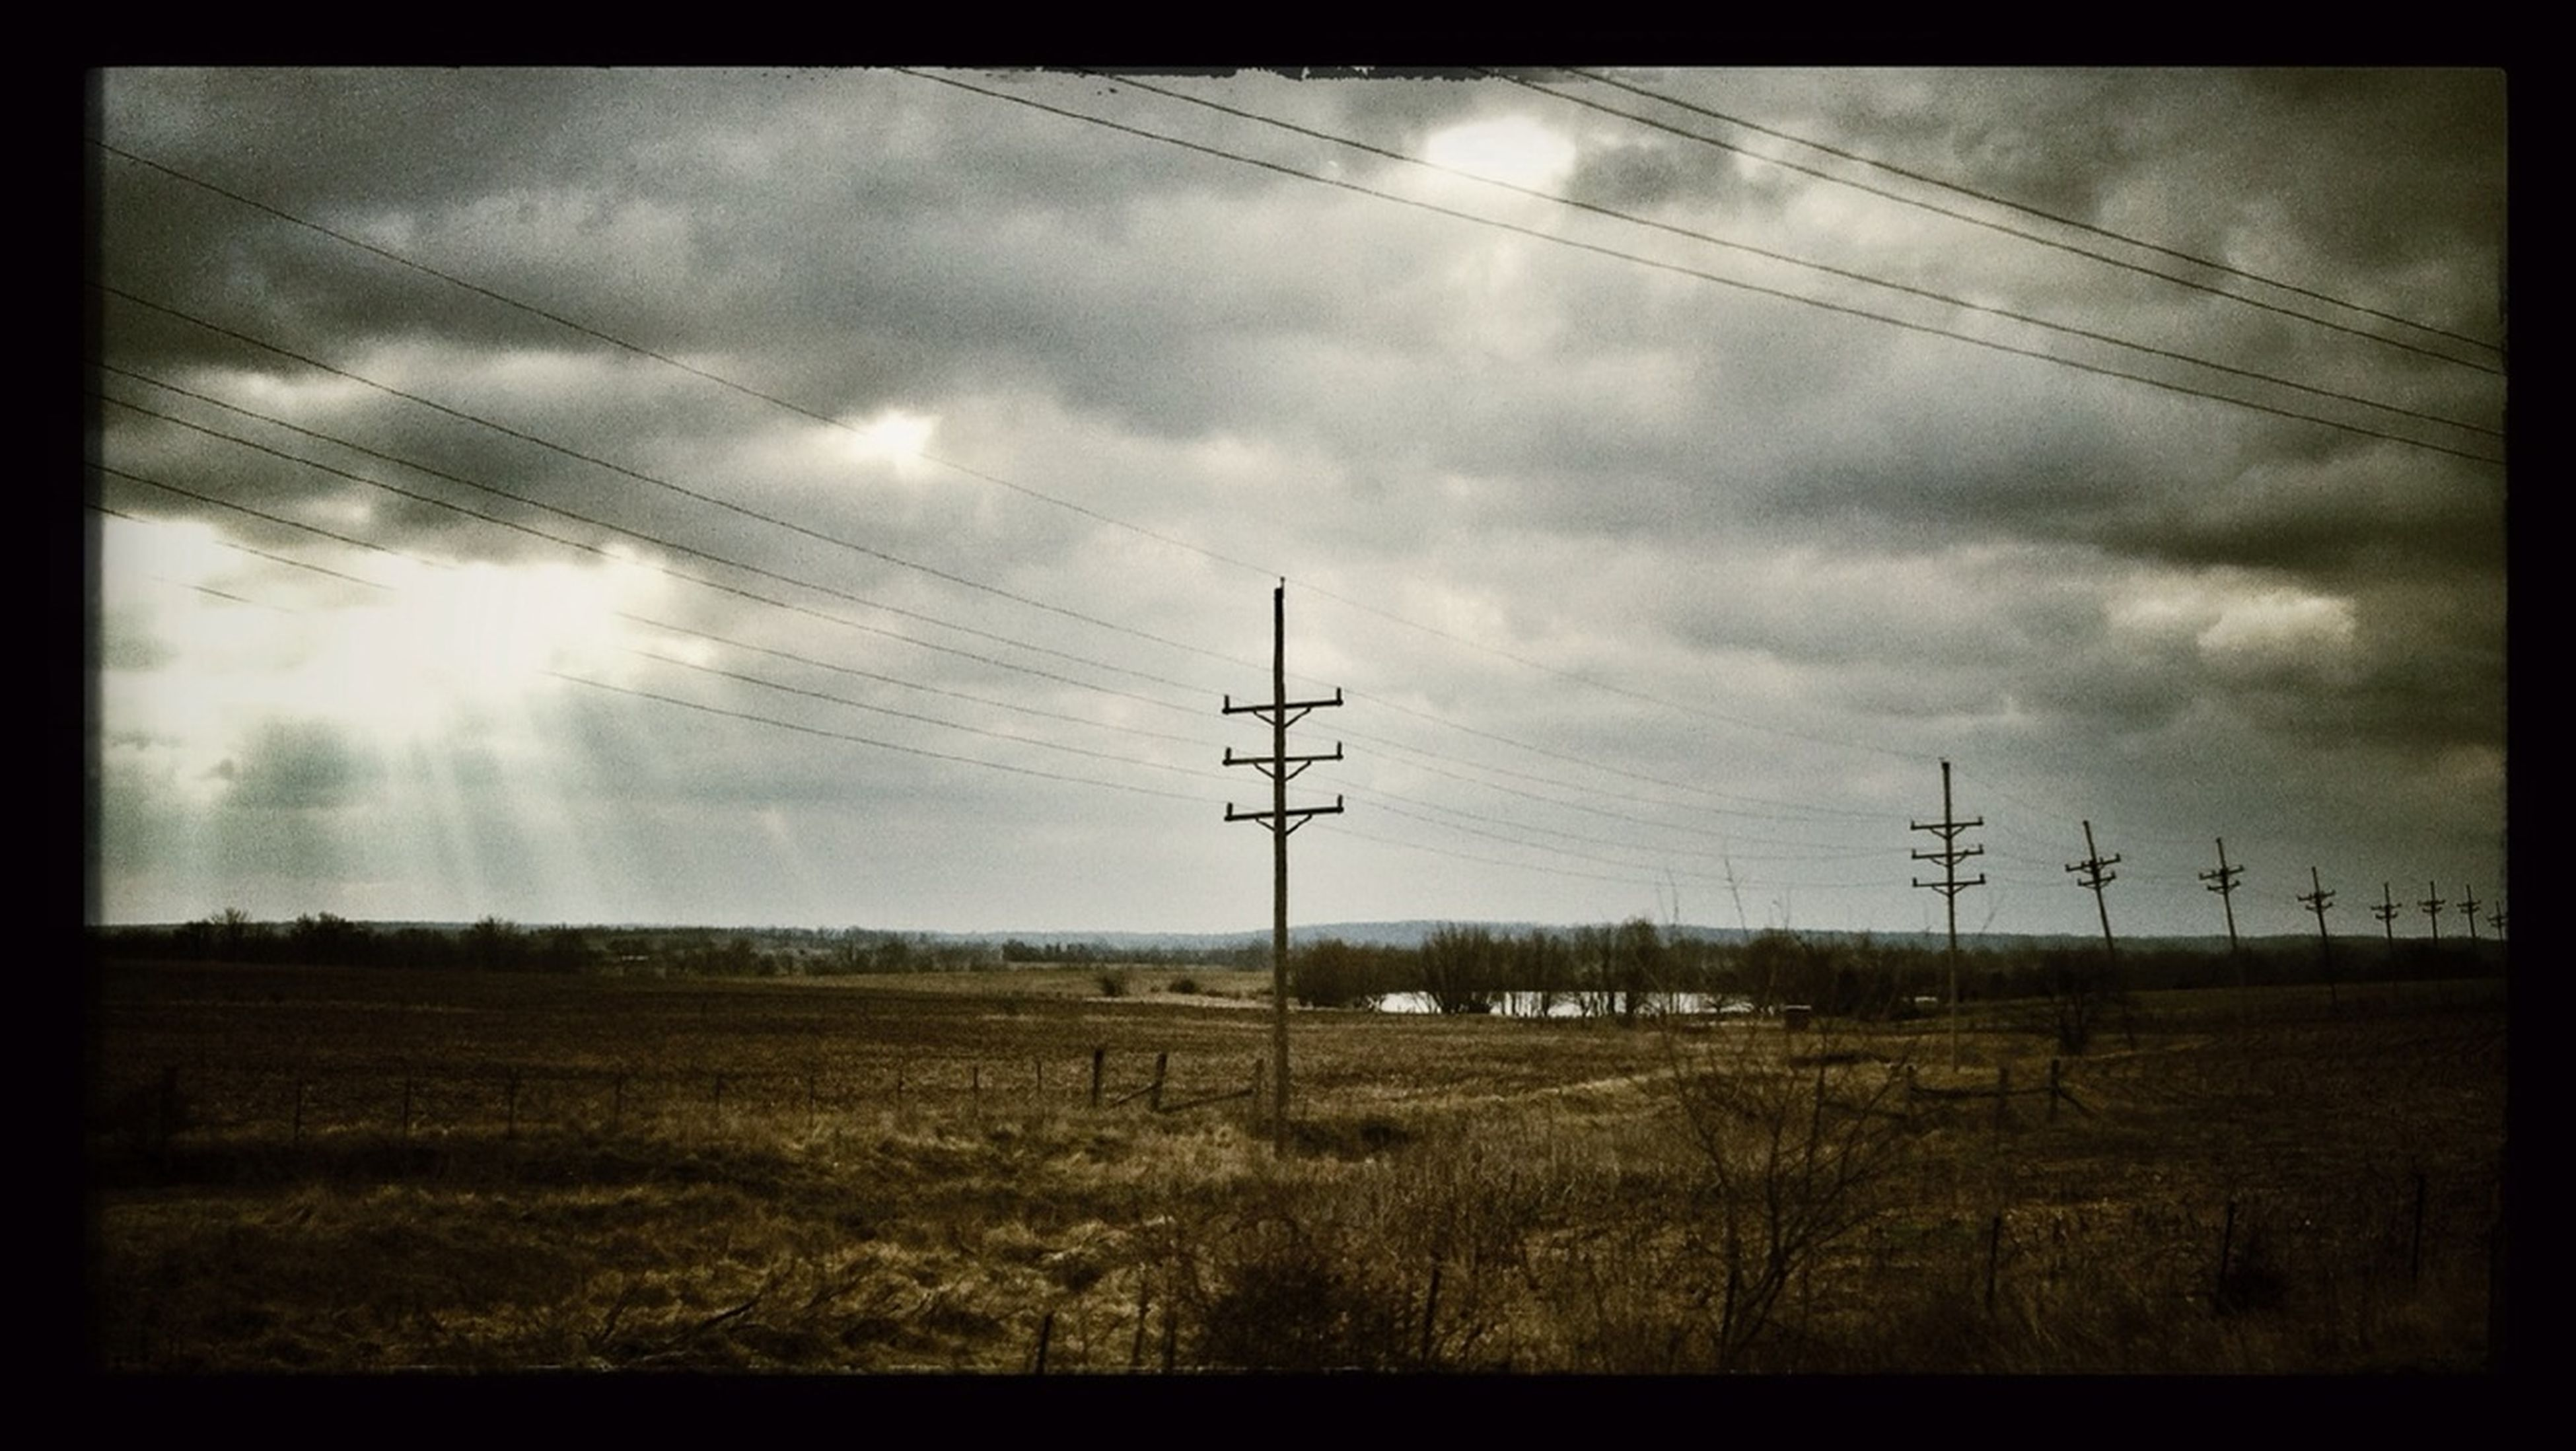 power line, electricity pylon, power supply, fuel and power generation, electricity, sky, field, landscape, cloud - sky, rural scene, cable, technology, tranquil scene, tranquility, connection, cloud, nature, cloudy, transfer print, scenics